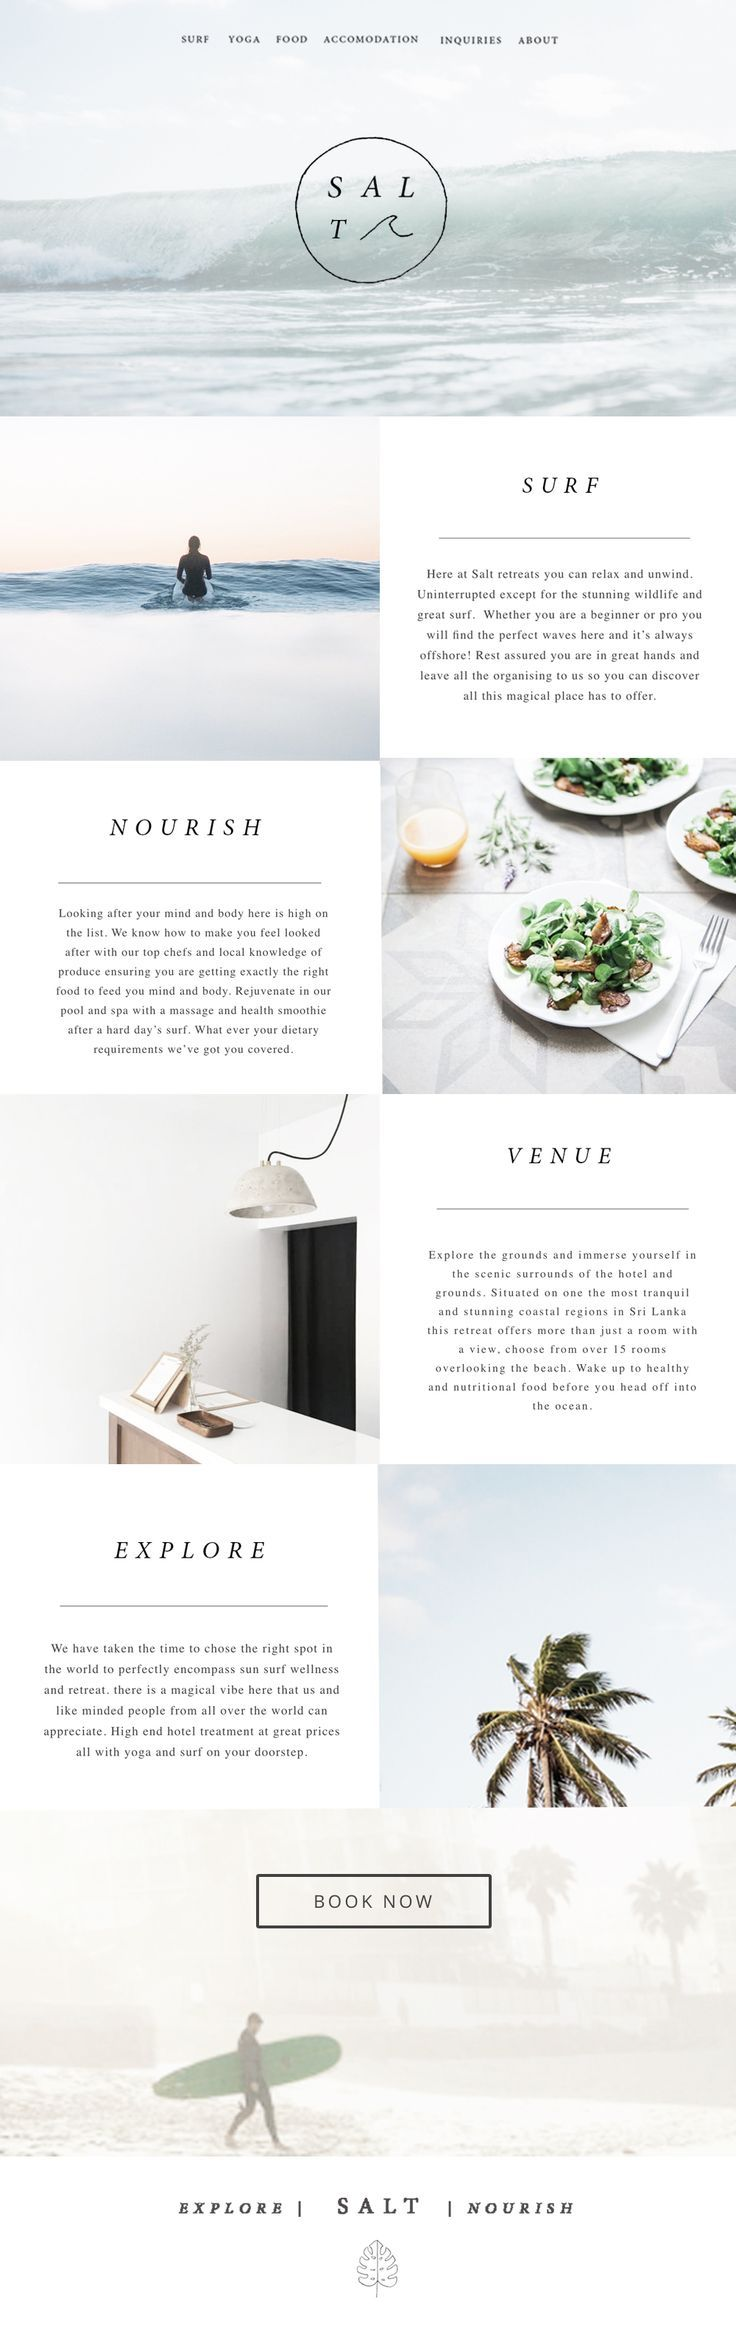 I like the alternating sections, photos make up the color of site and just black and white give it very professional and clean feel